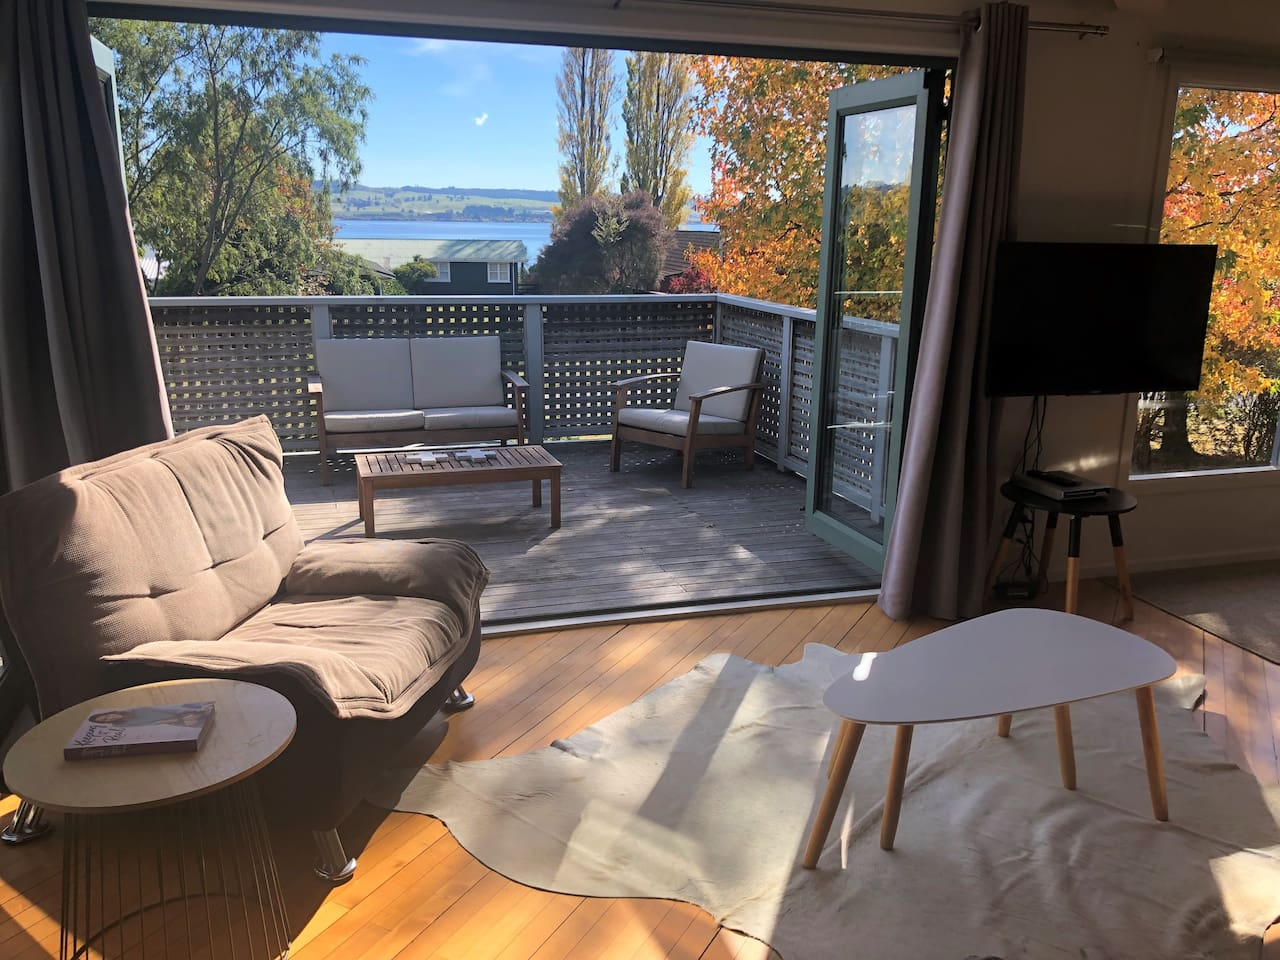 Living area opens out to the deck overlooking the lake